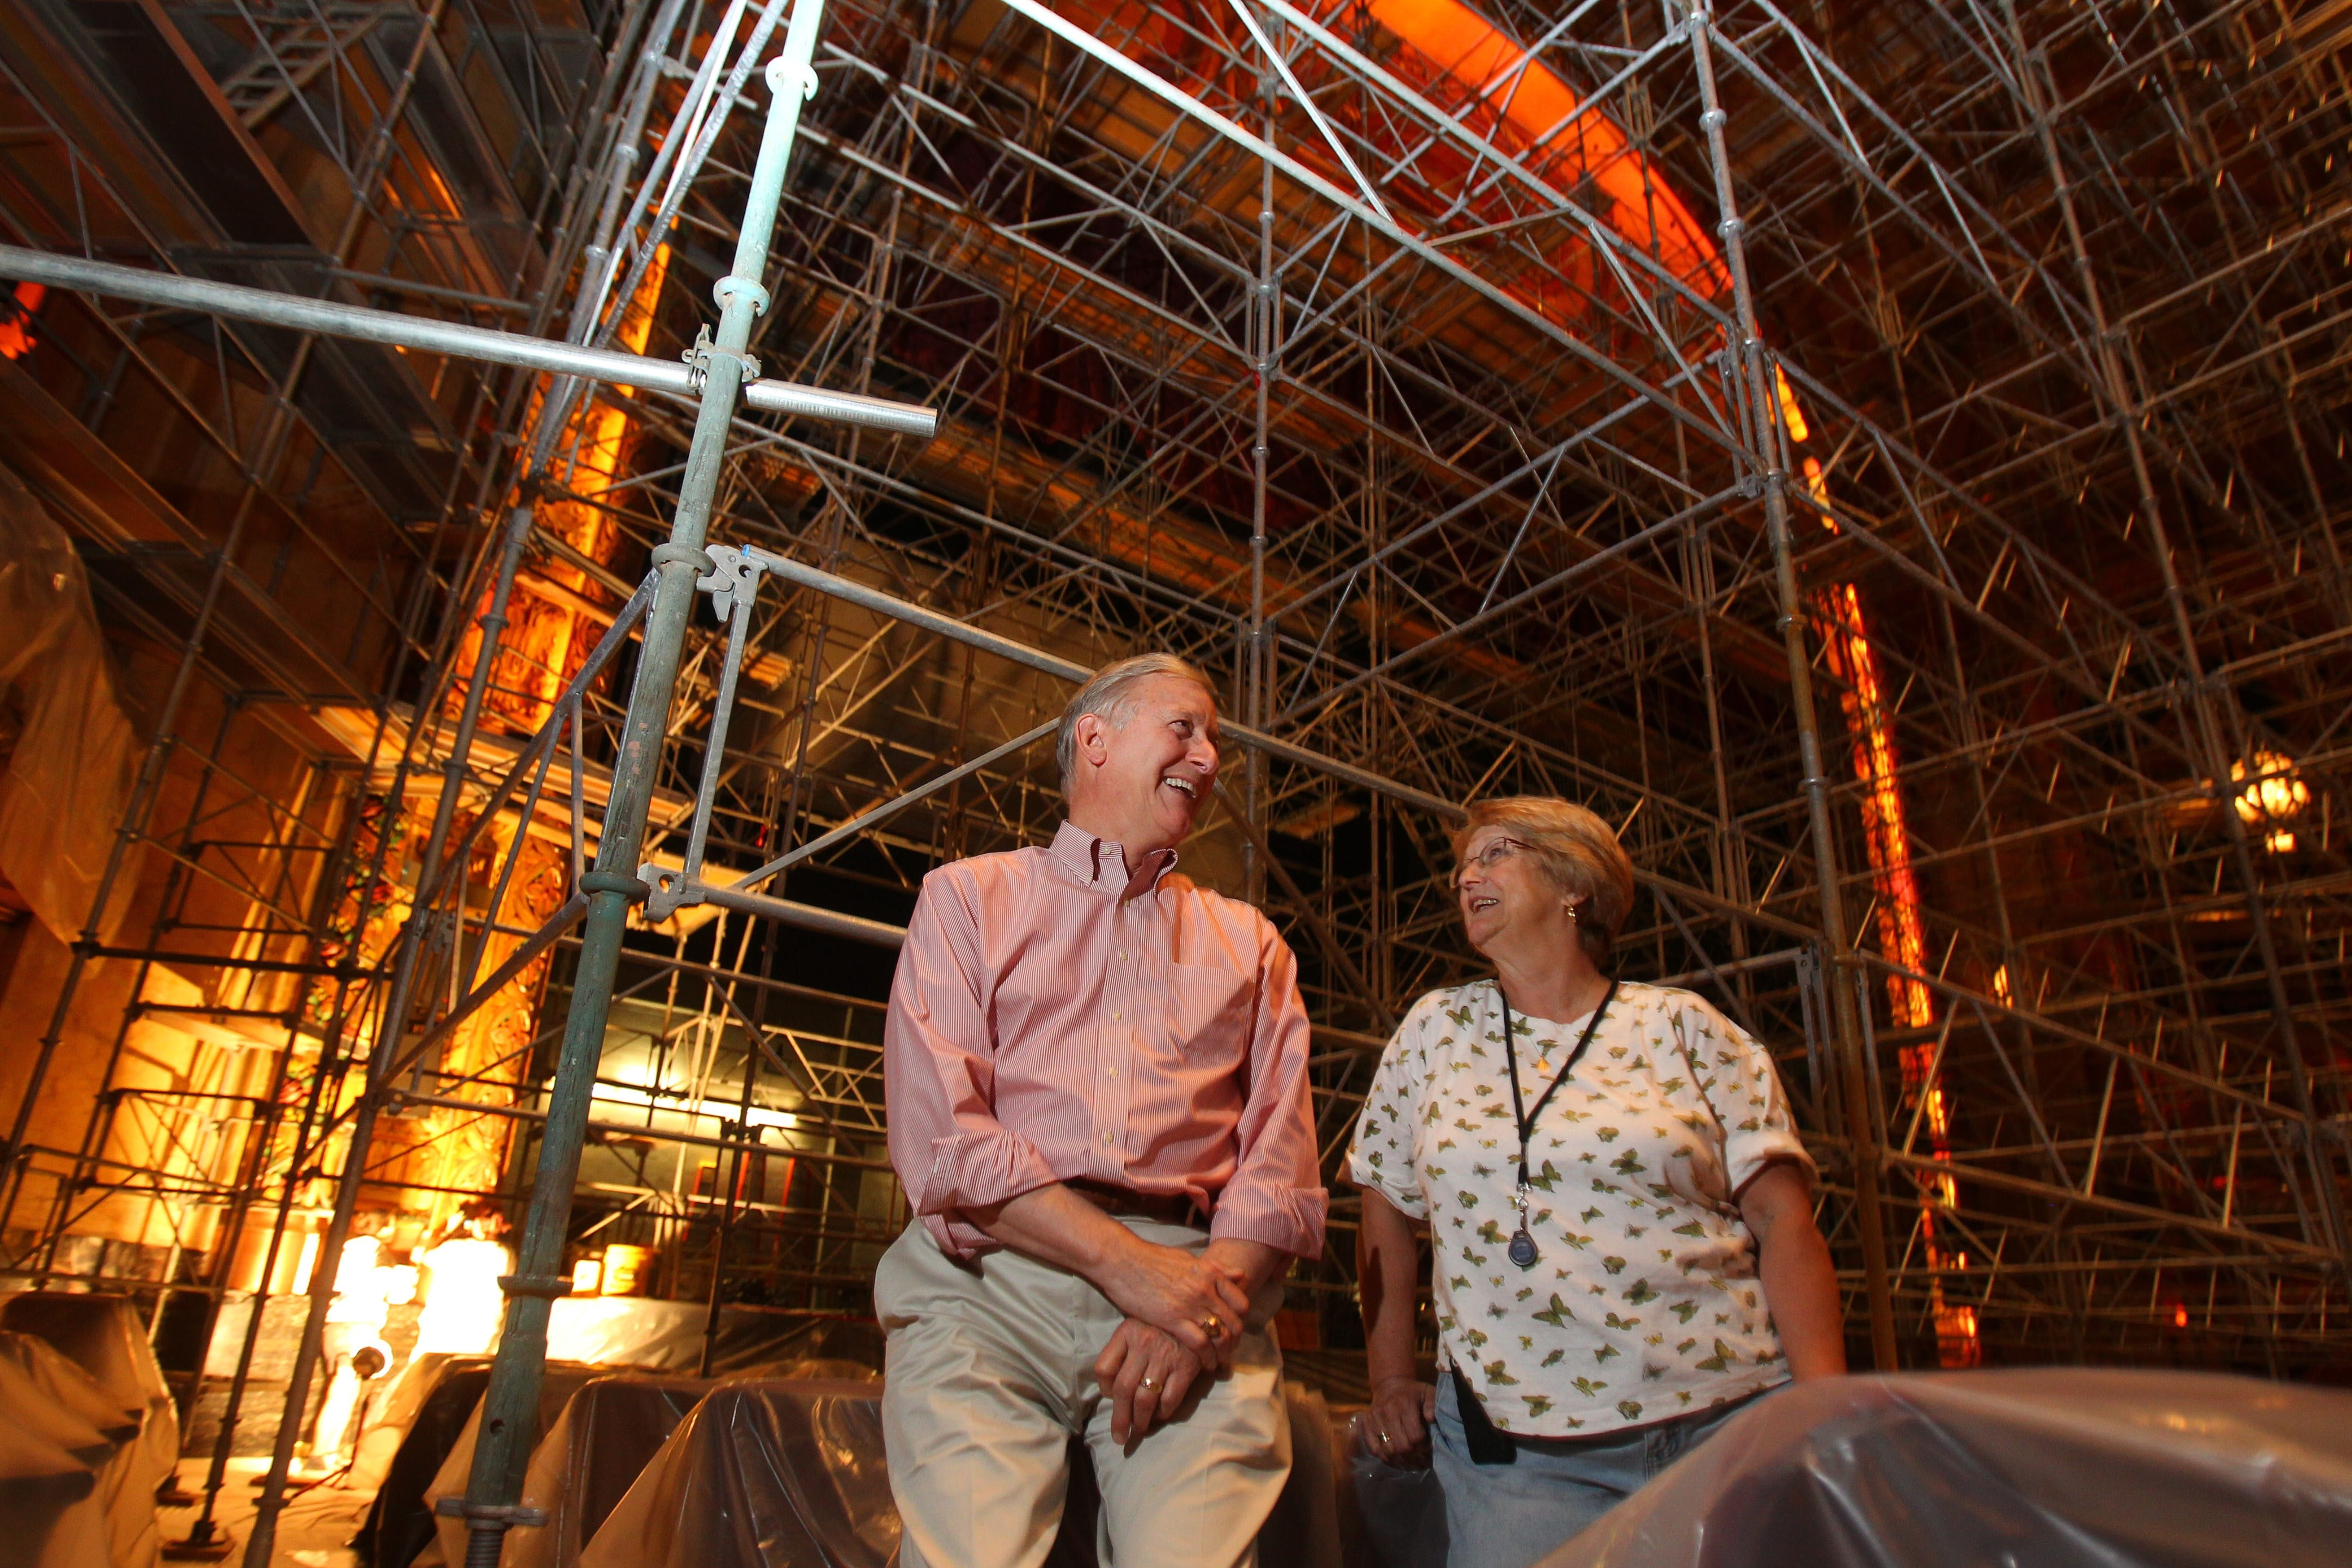 Restoration consultant Doris Collins, right, and Anthony Conte, president of Shea's Performing Arts Center sit under the scaffolding of the third phase of the restoration project at the theater on Wednesday.